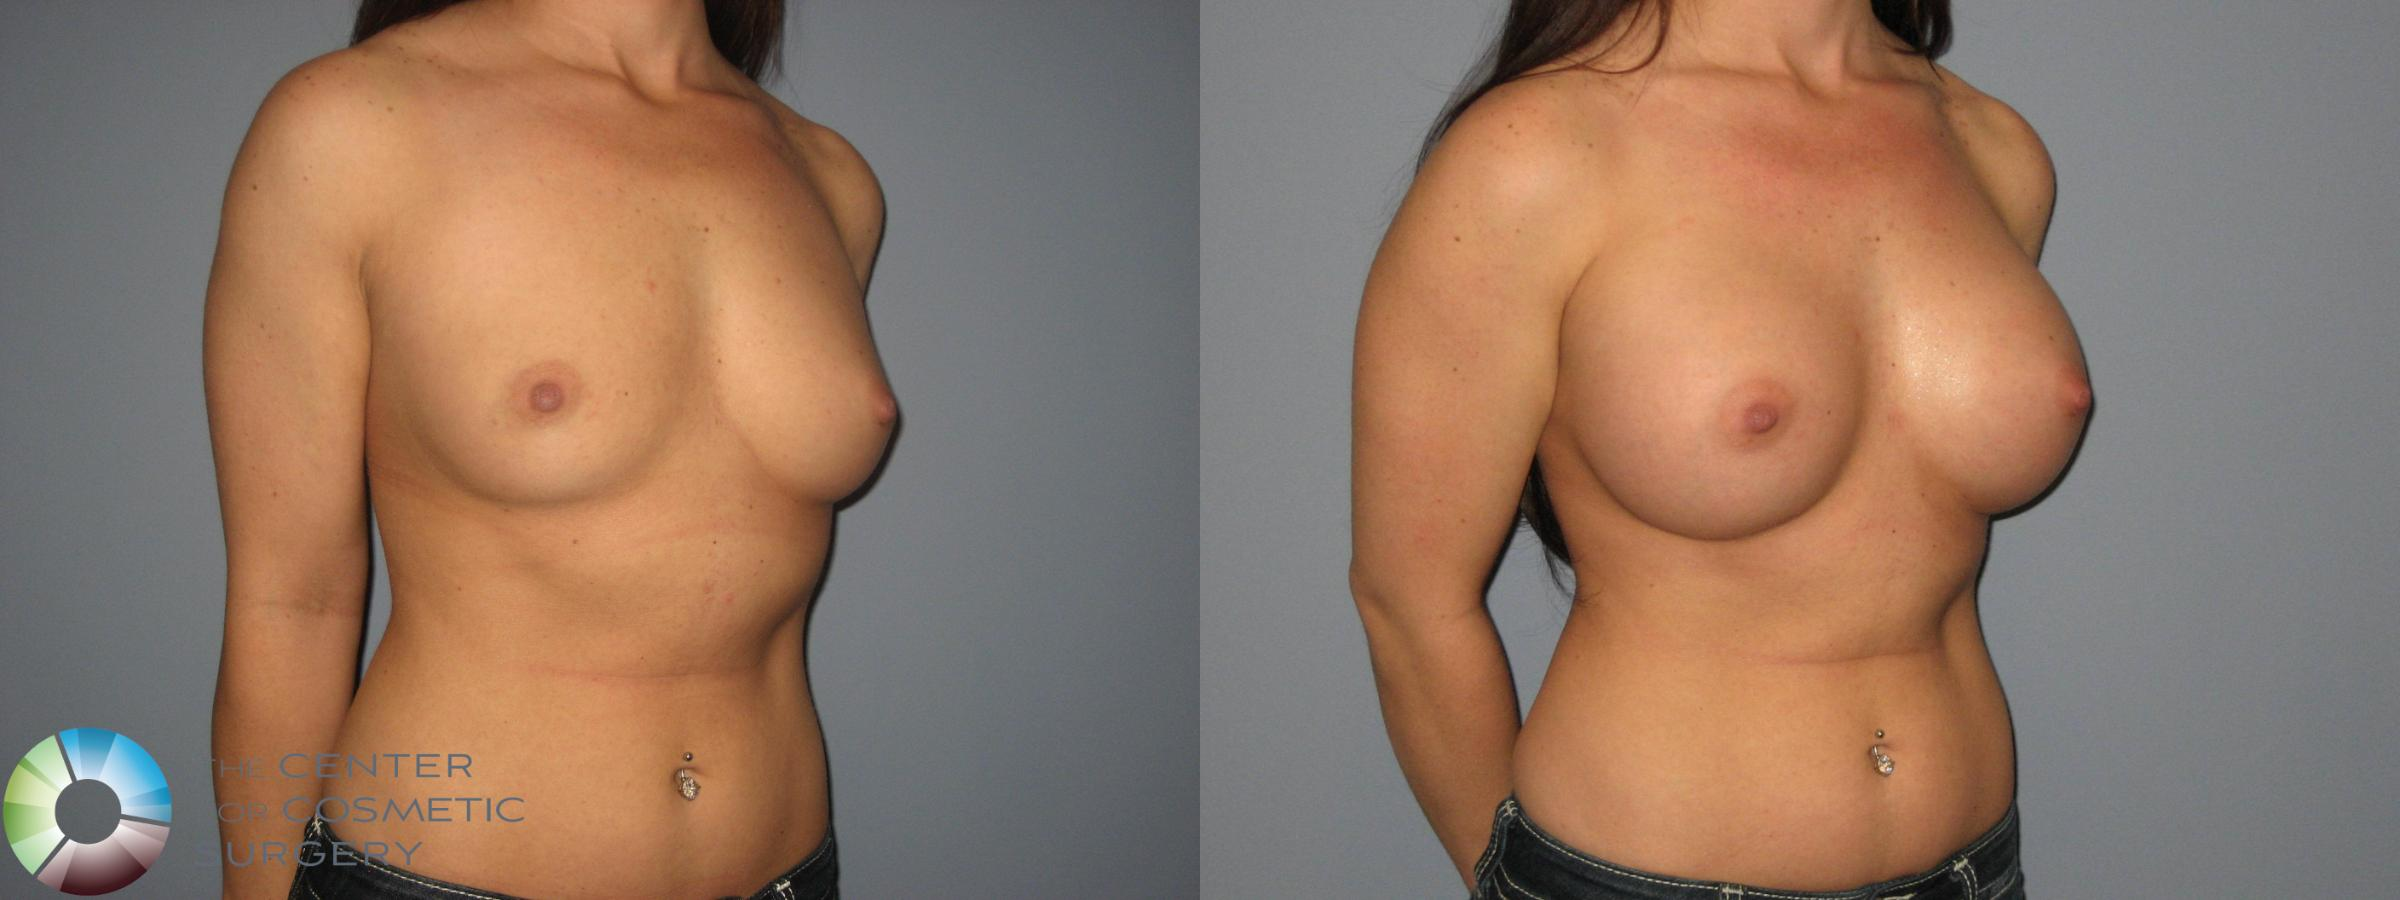 Breast Augmentation Case 411 Before & After View #3 | Golden, CO | The Center for Cosmetic Surgery